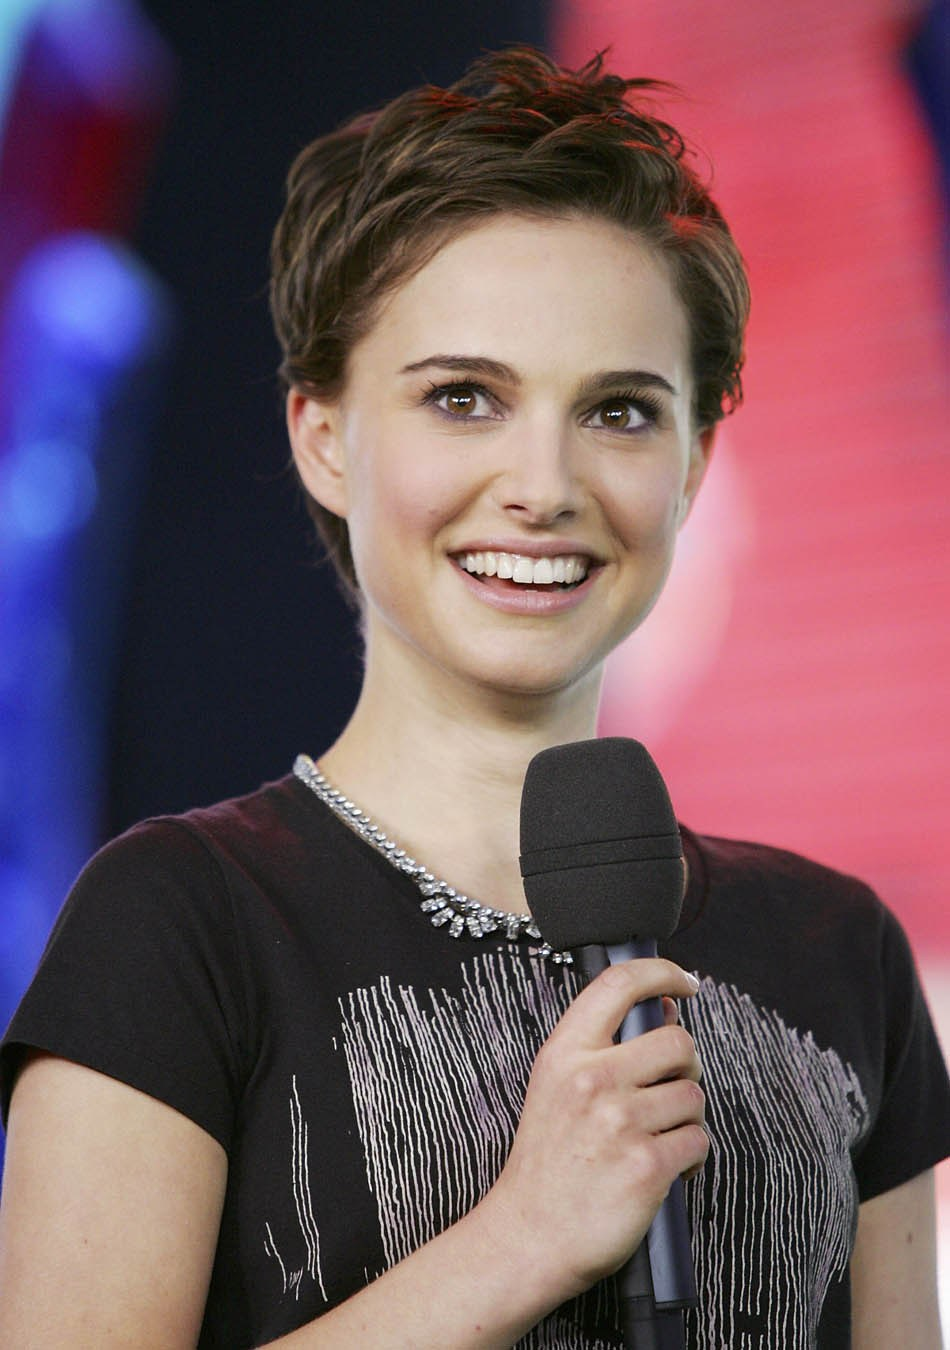 natalie portman - photo #50